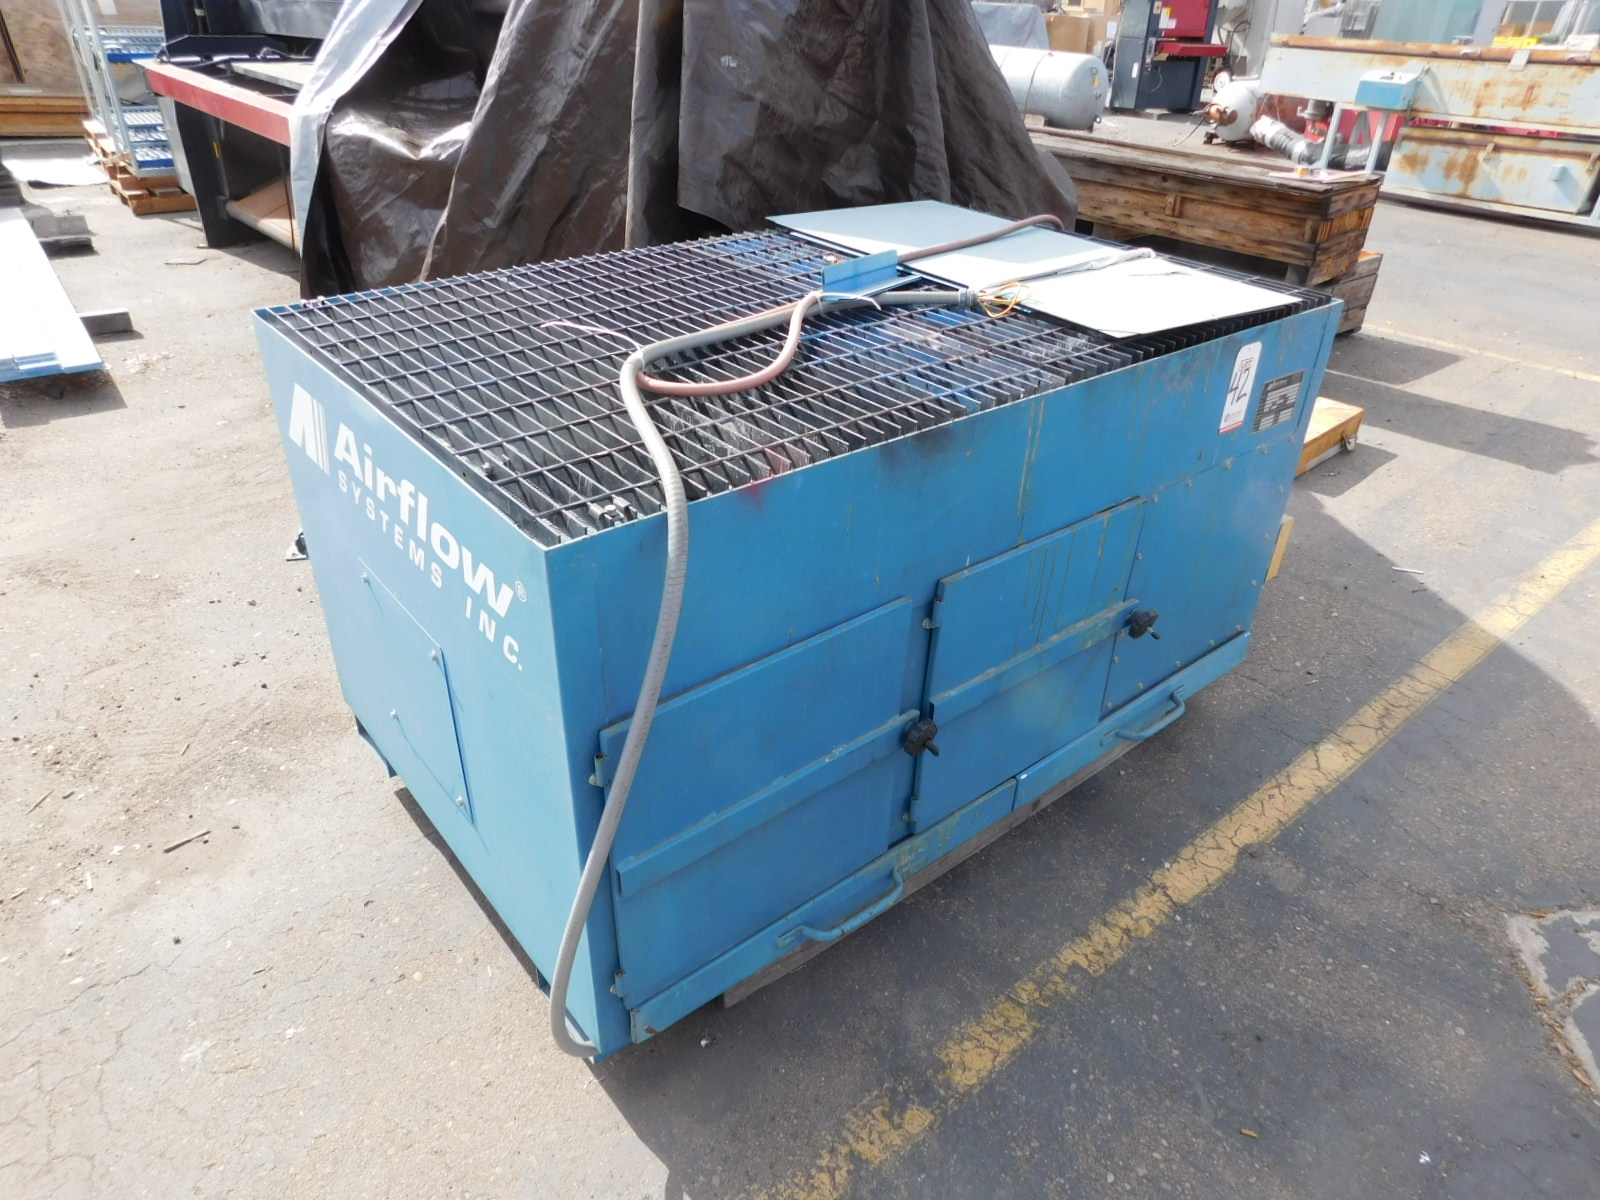 Lot 42 - 2000 AIRFLOW SYSTEMS DT-3000 DOWNDRAFT TABLE W/ VIBRA-PULSE FILTER CLEANING SYSTEM, WORKTOP MEASURES